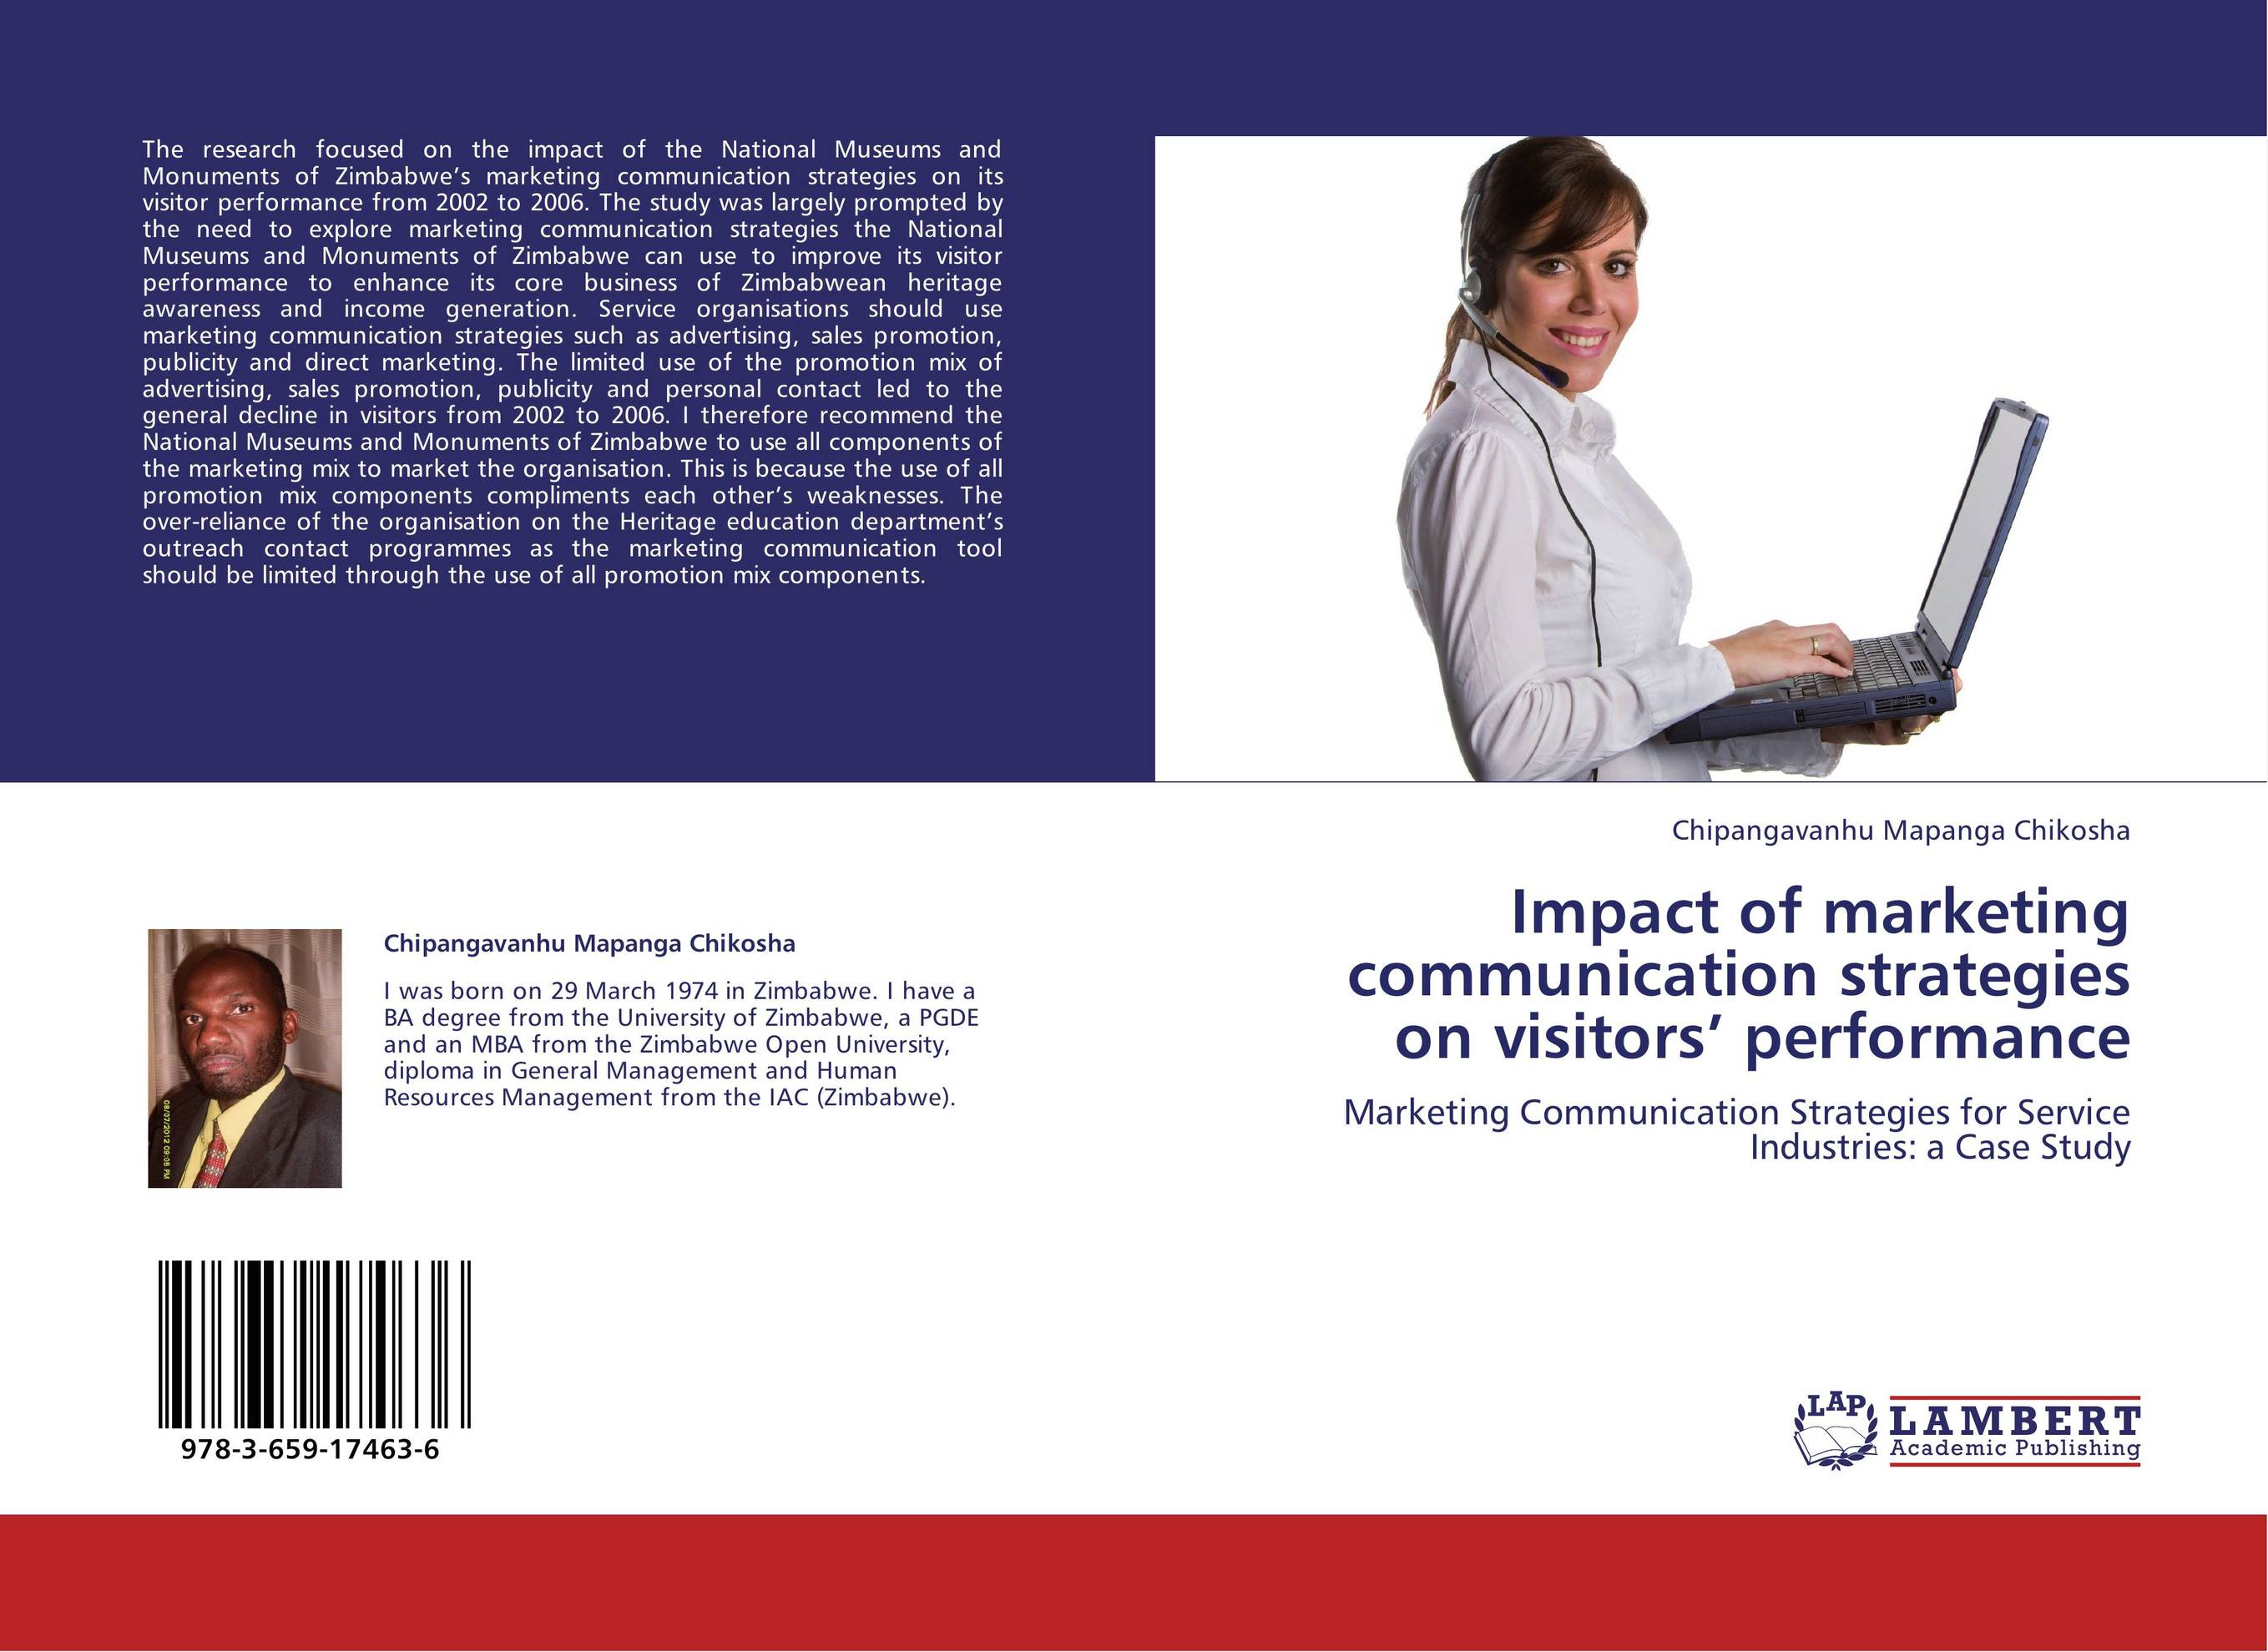 impact of marketing on the business industry According to the study by tang & et al (2005) about marketing strategy and business performance of small firms in china, the 'long term differentiation marketing strategy' has positive effect on small firm's business performance.